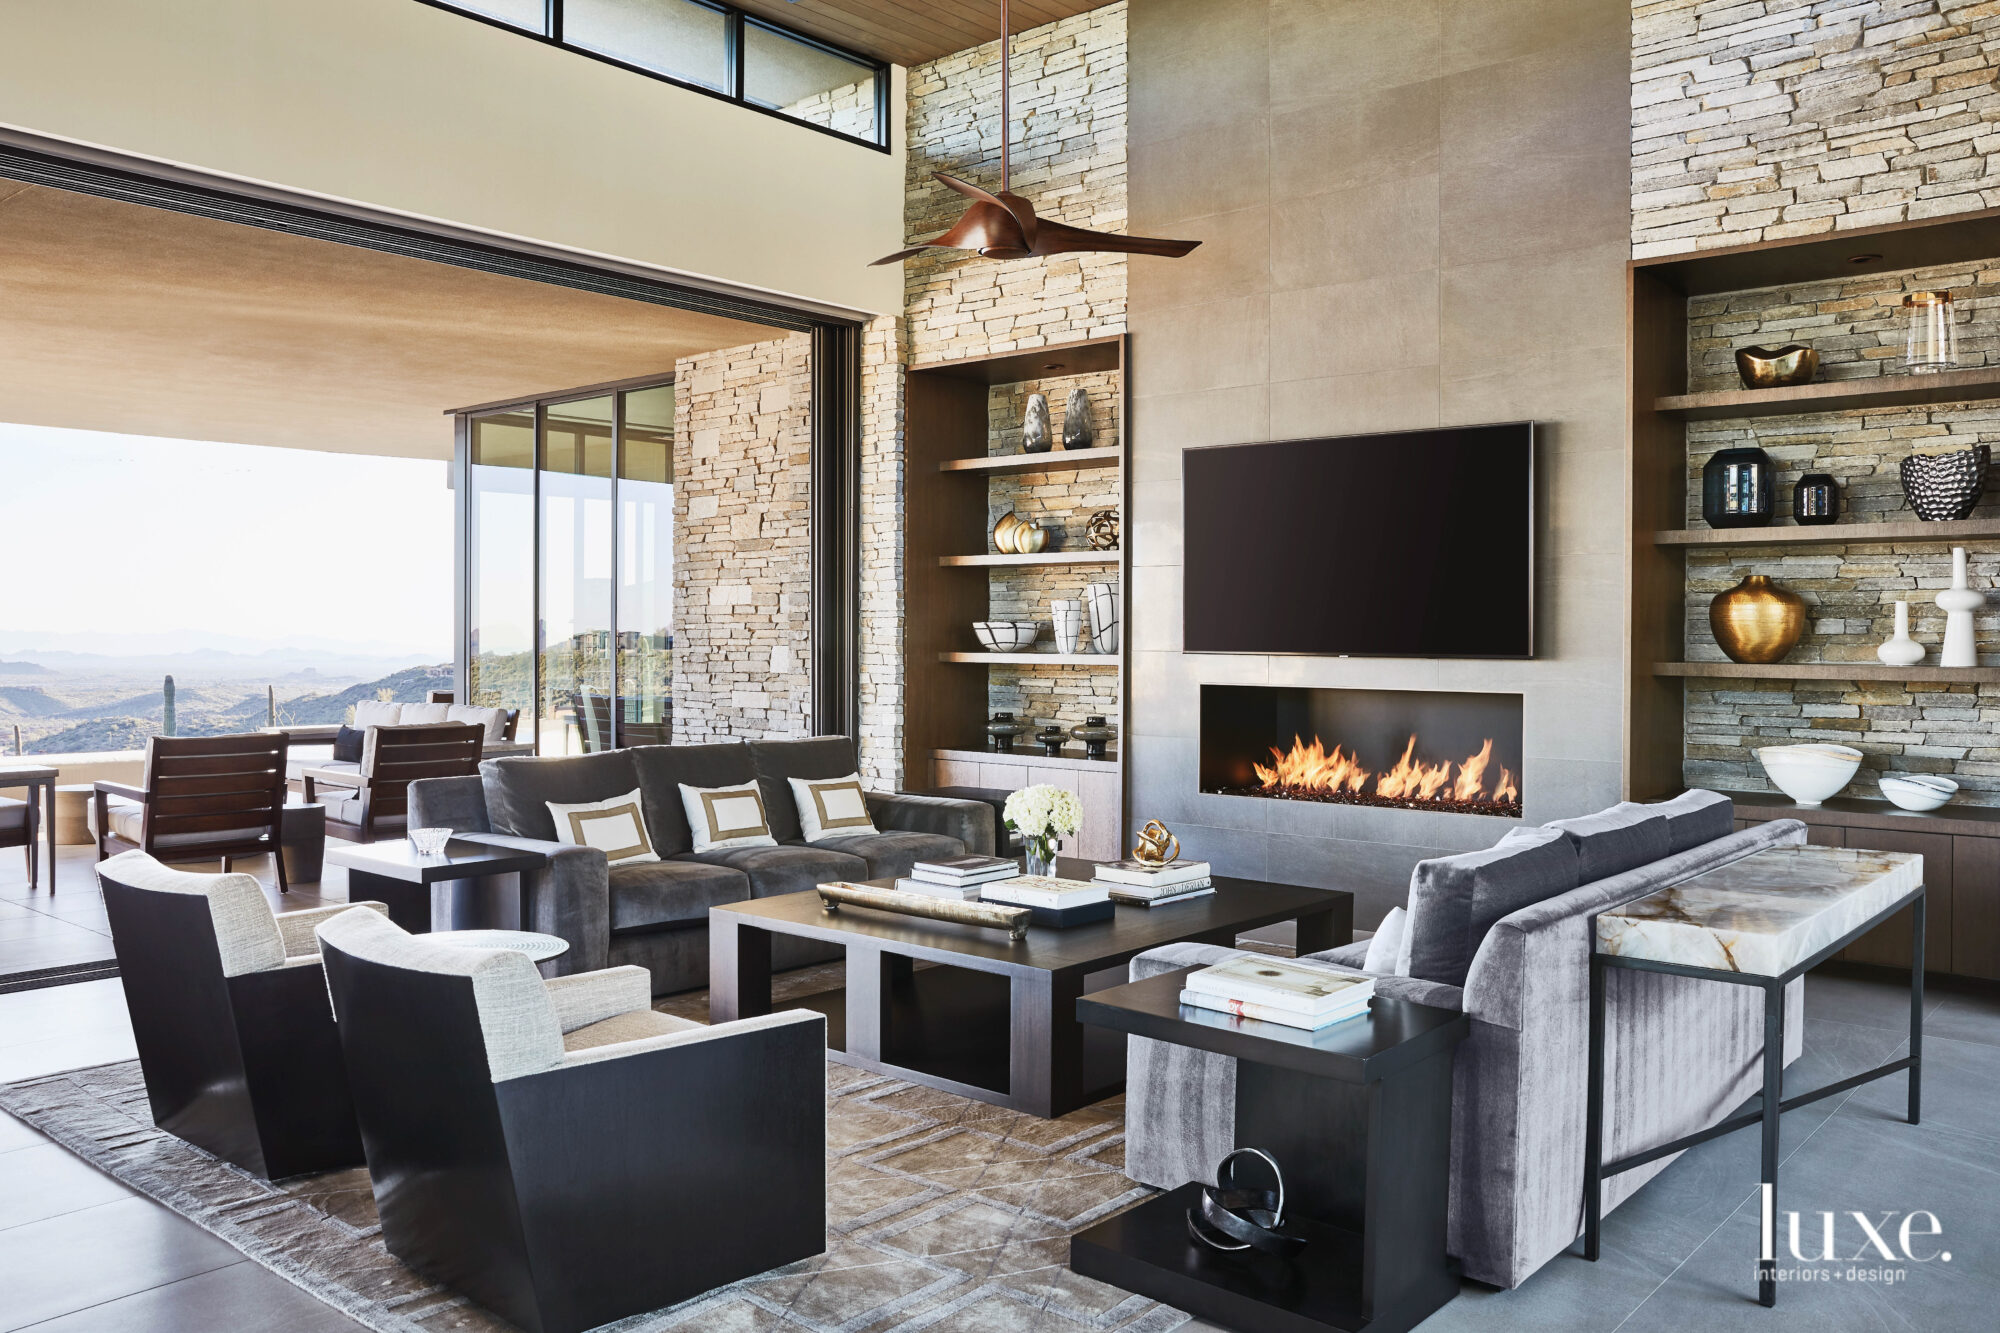 A gray-hued living area surrounds a fireplace, with further views to the mountain vistas.